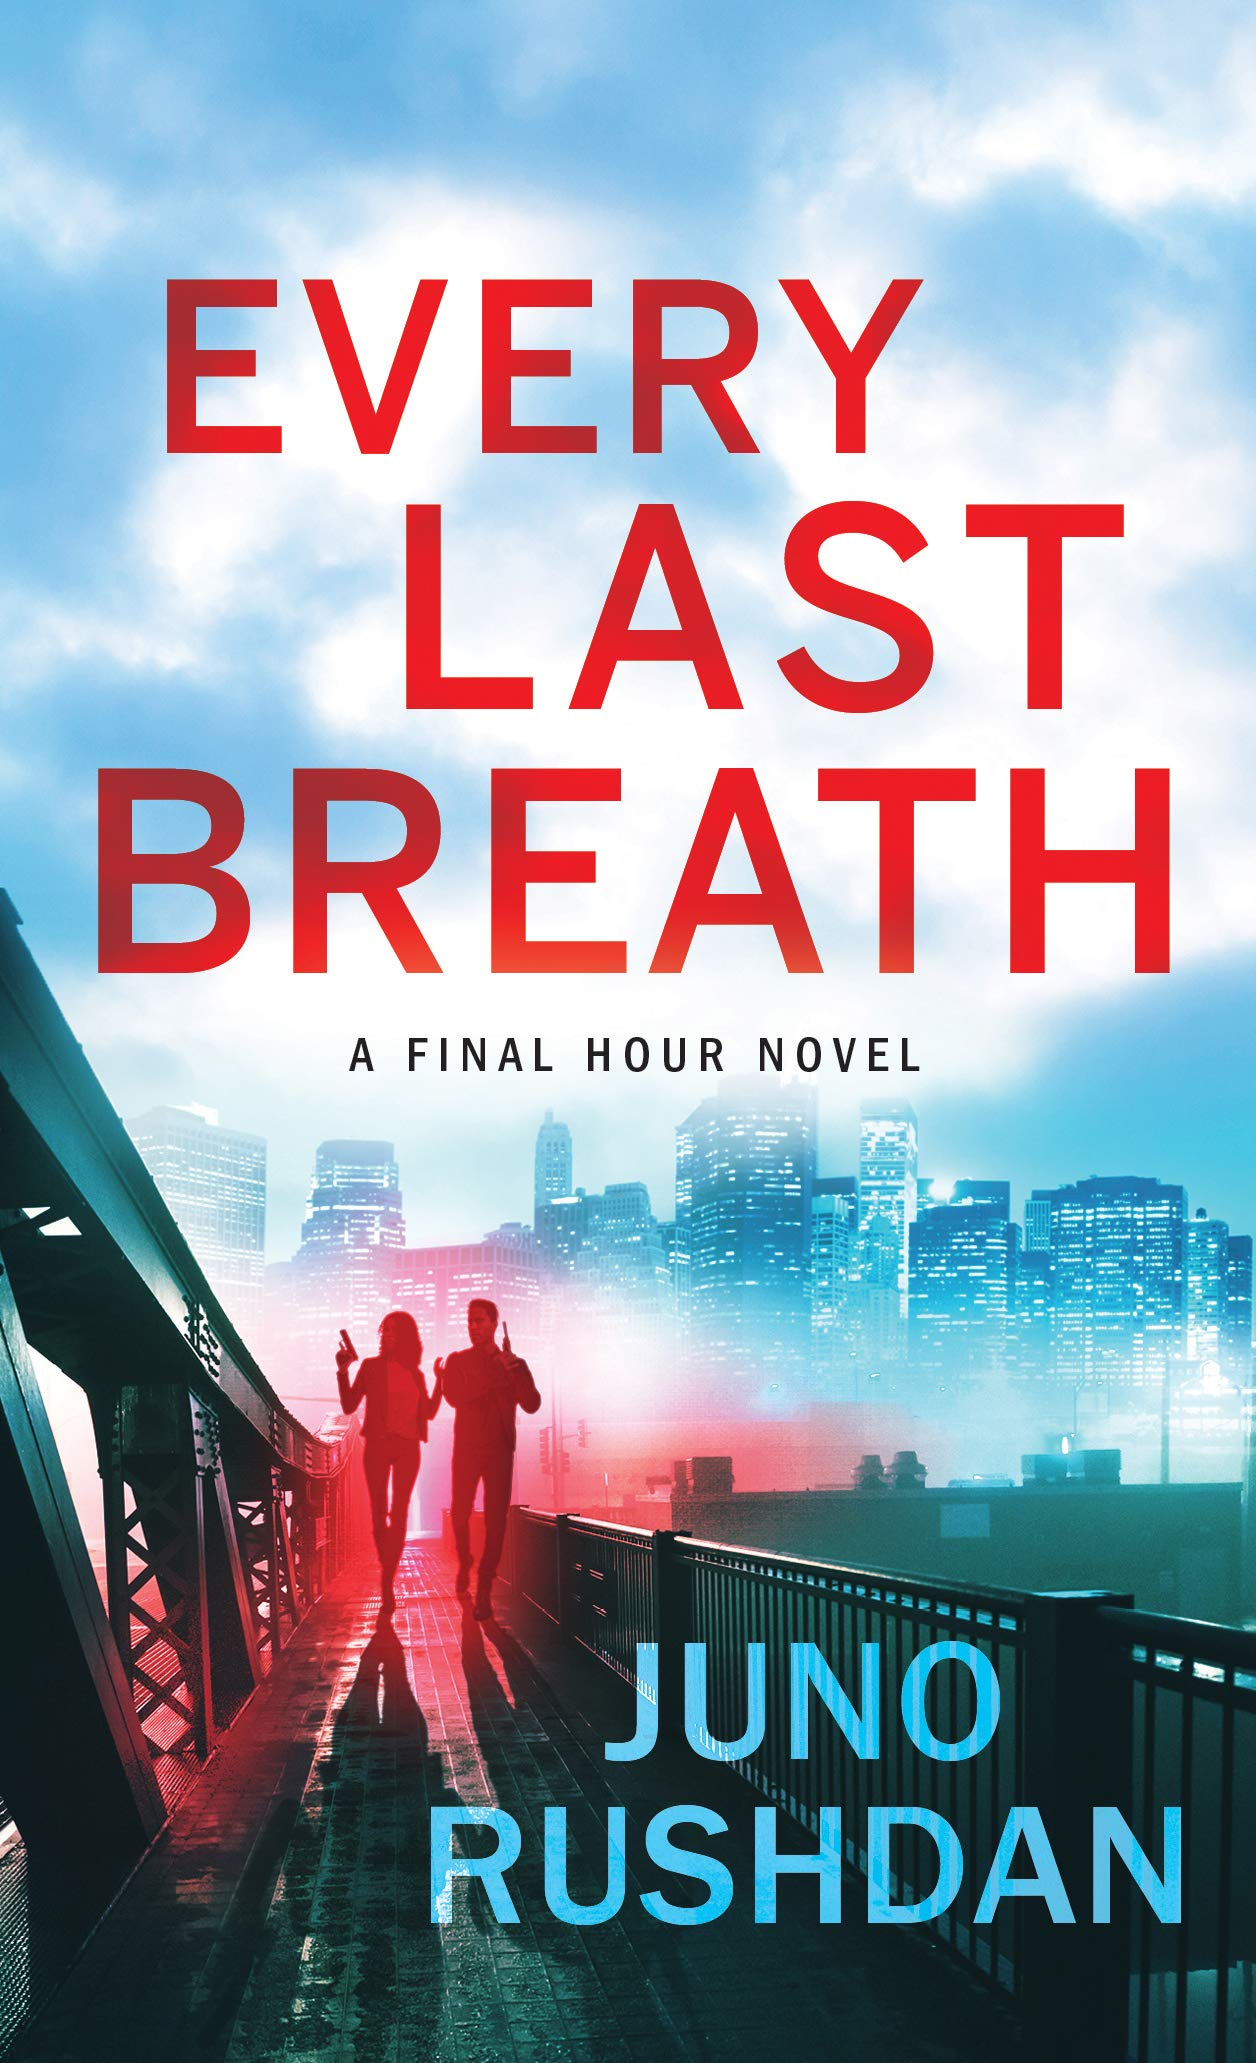 Image result for every last breath juno rushdan